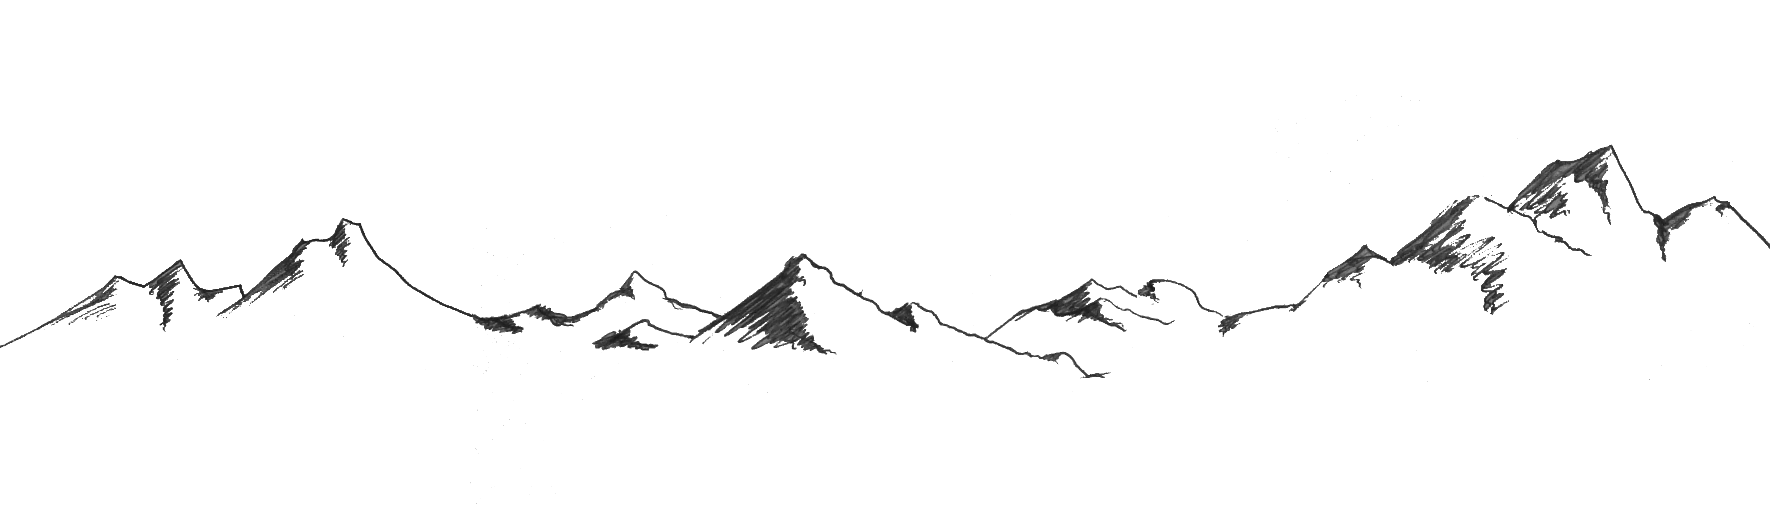 Download Mountains Free Download HQ PNG Image | FreePNGImg